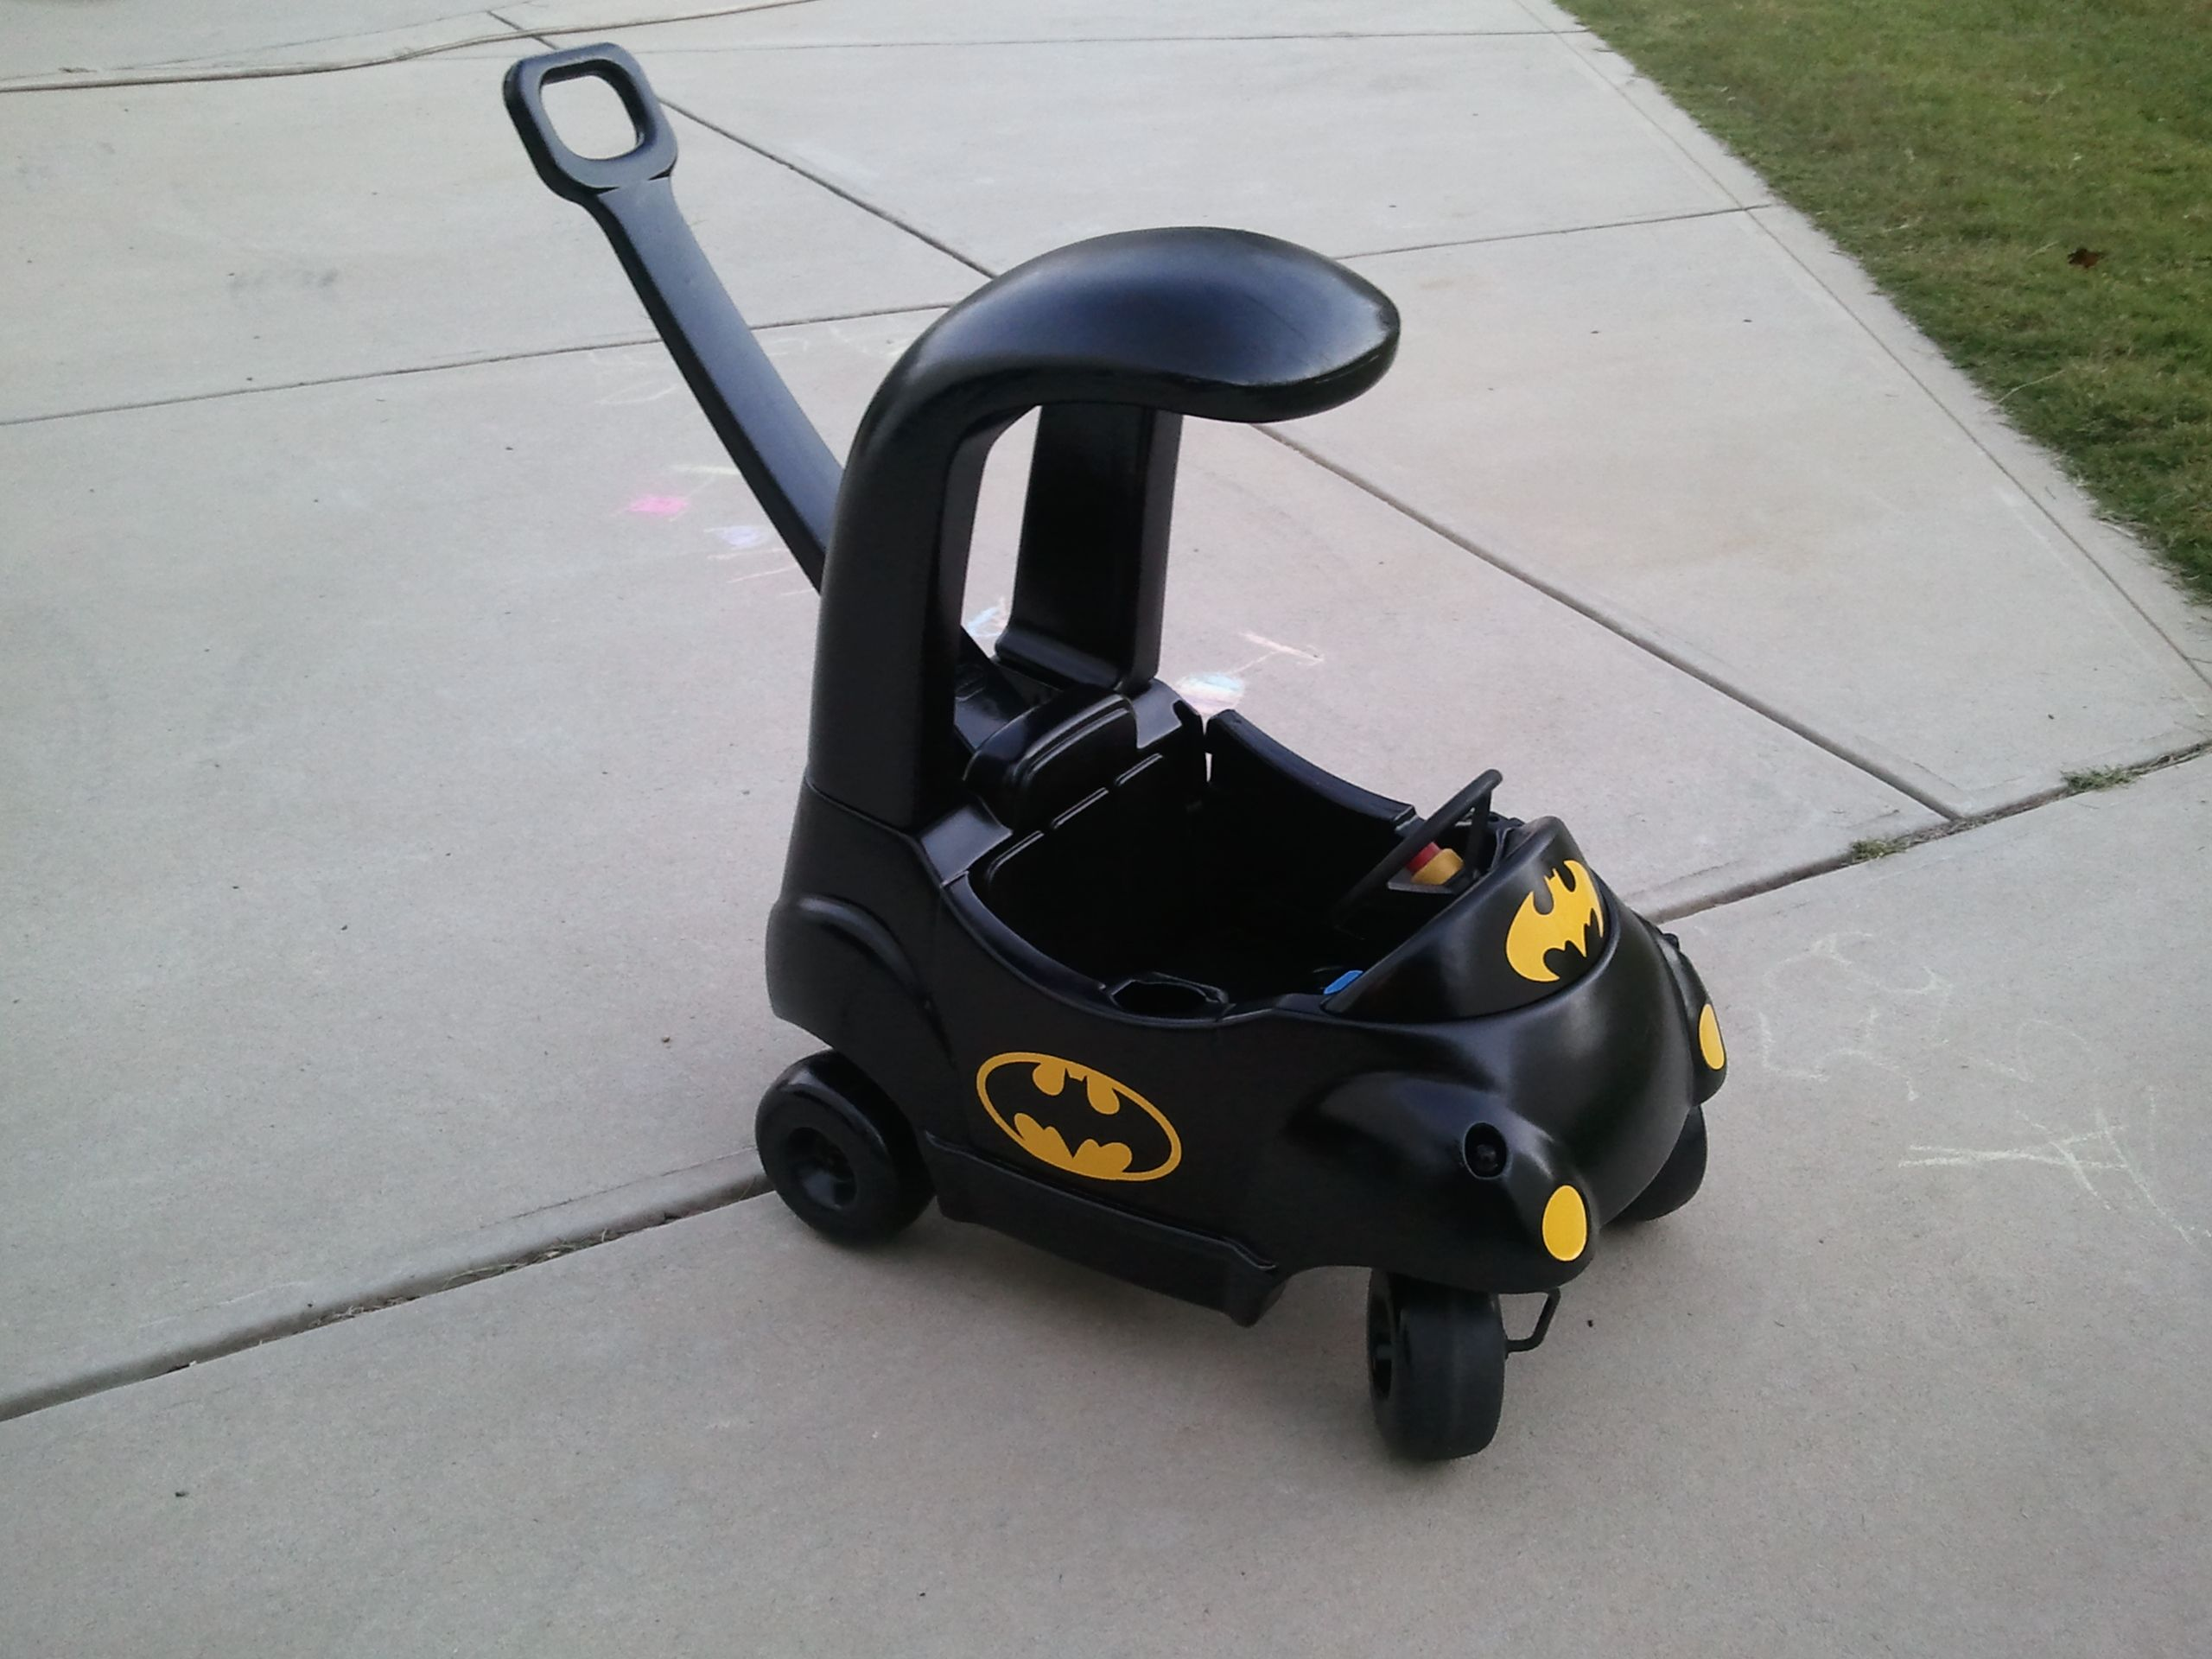 Little Tikes car transformed into the Batmobile